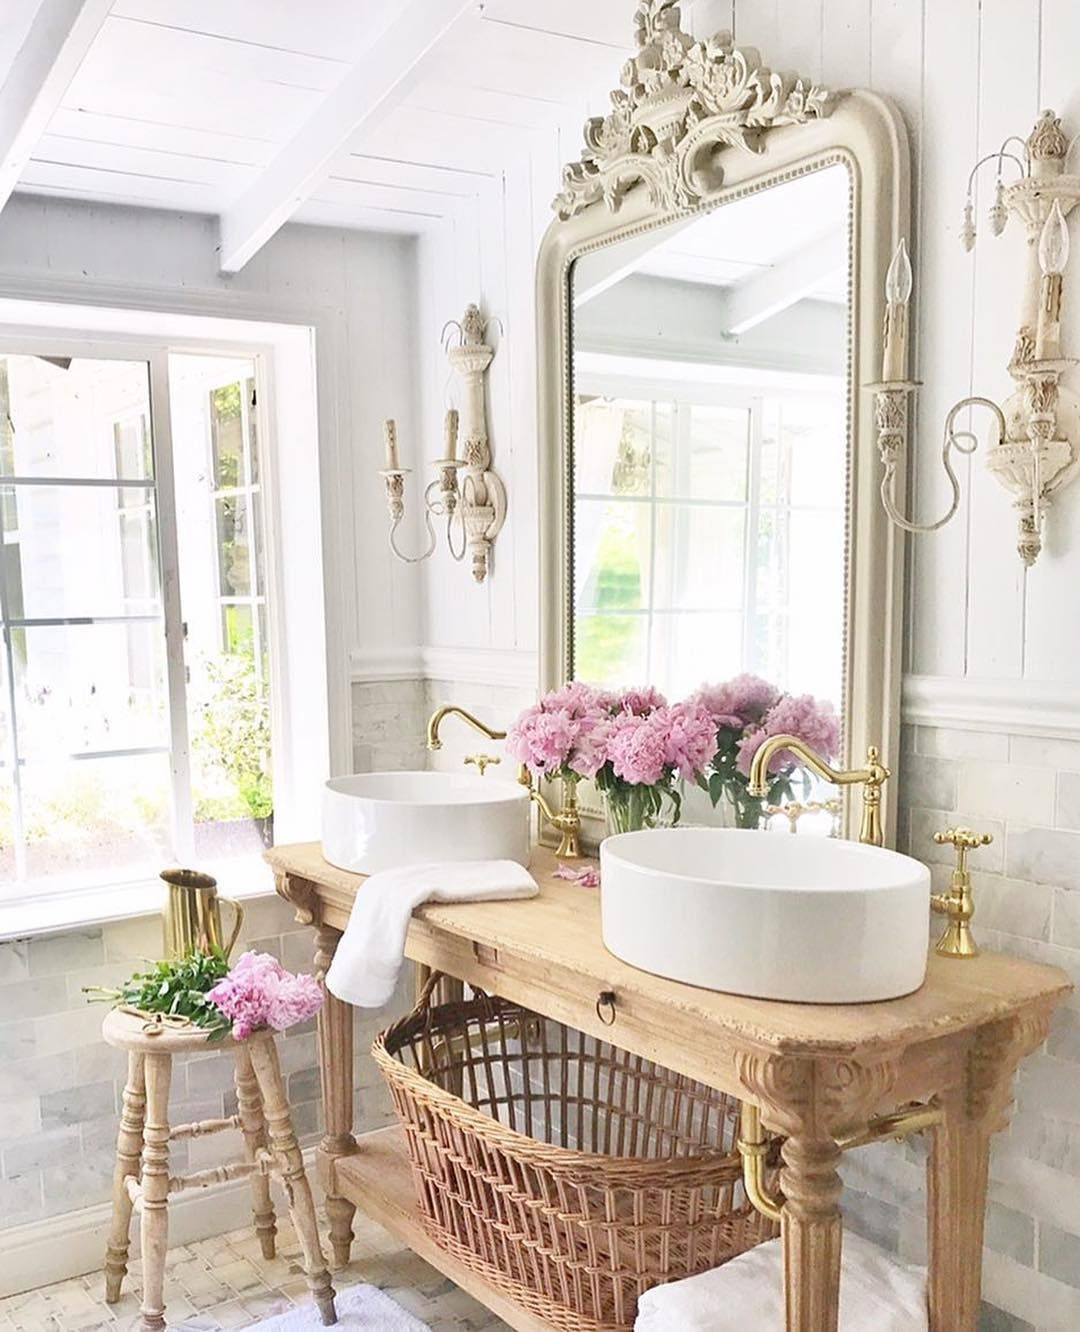 Powder room goals ✨💄 Photo by: @frenchcountrycottage | ⭐Bathroom ...